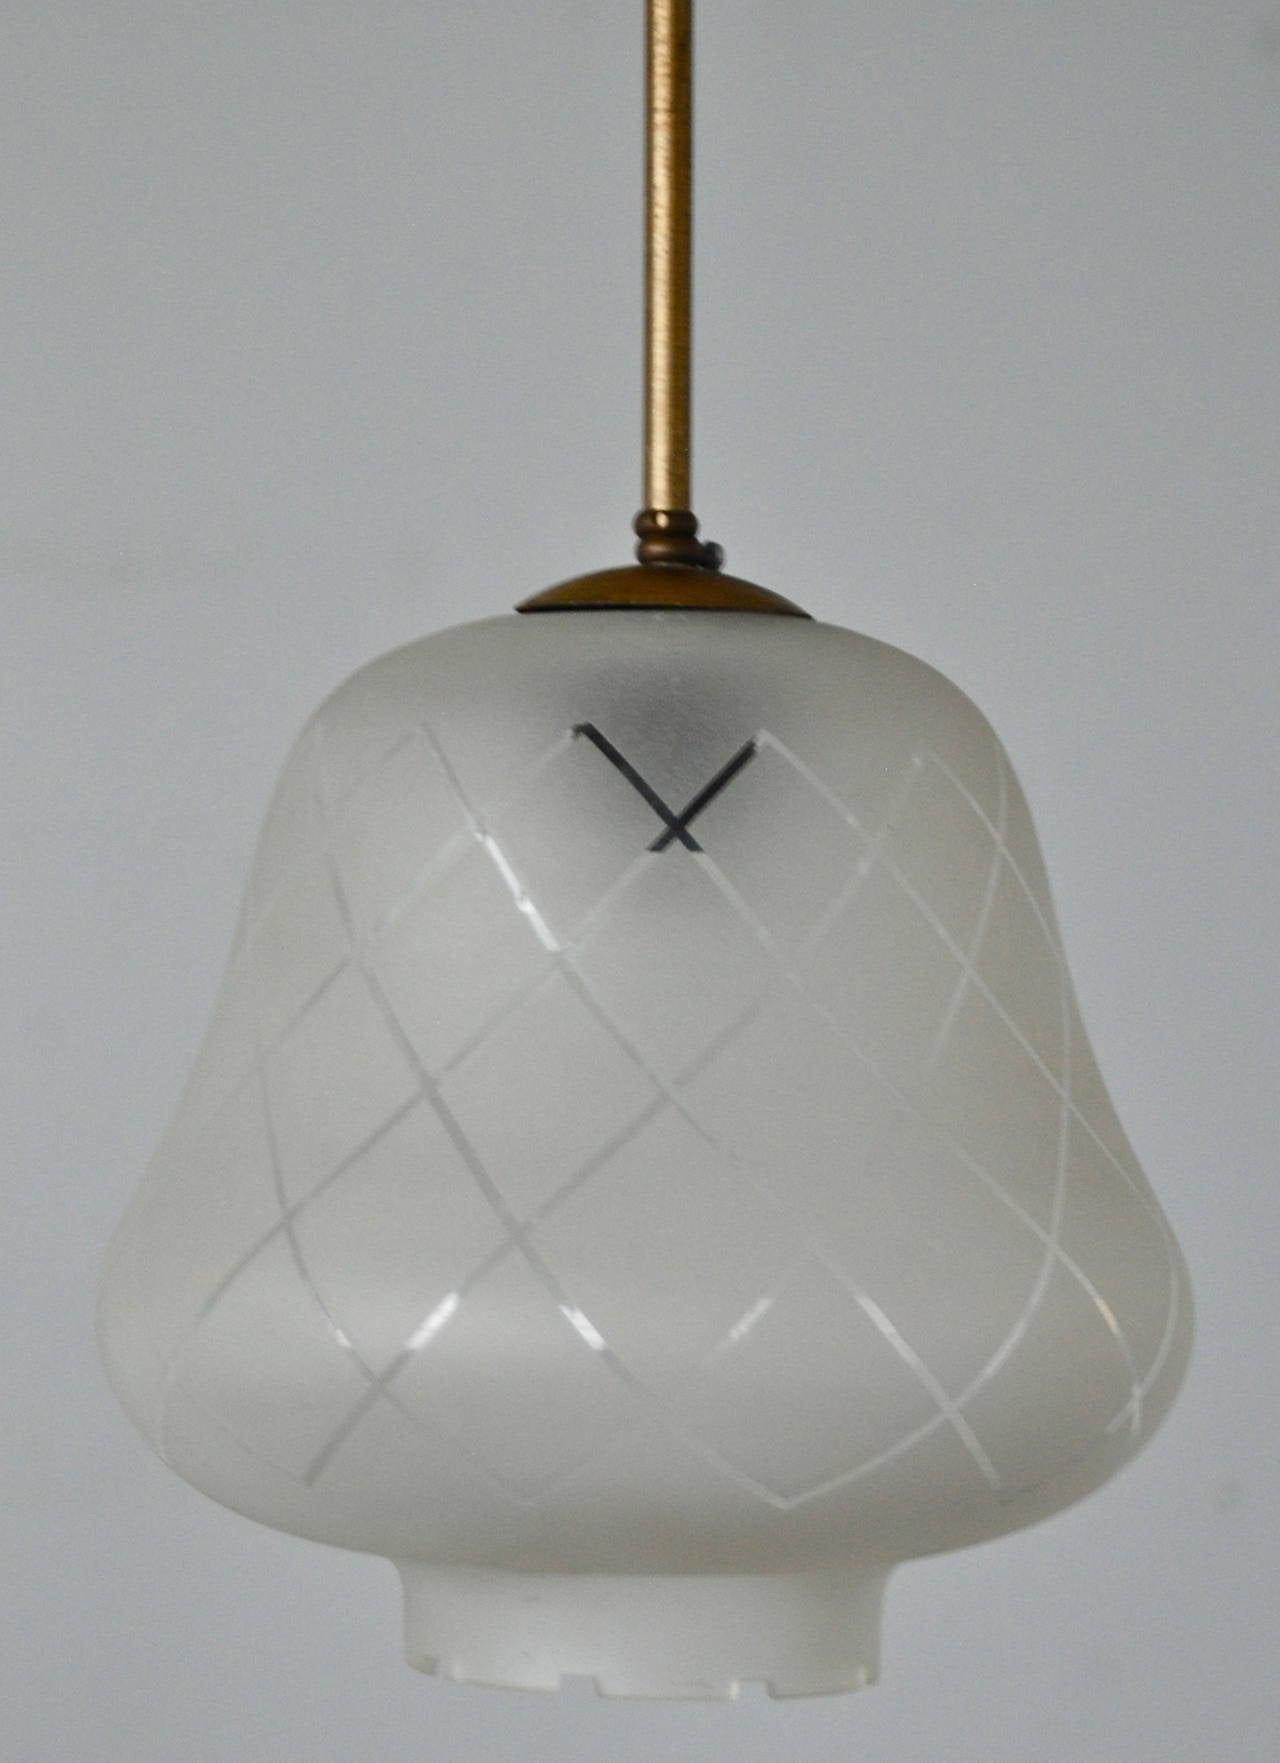 Vintage pendant, attributed to Orrefors, Sweden, circa 1930s-1940s. Body in brass, shade of frosted glass with etched decoration. Dimensions: Height 9